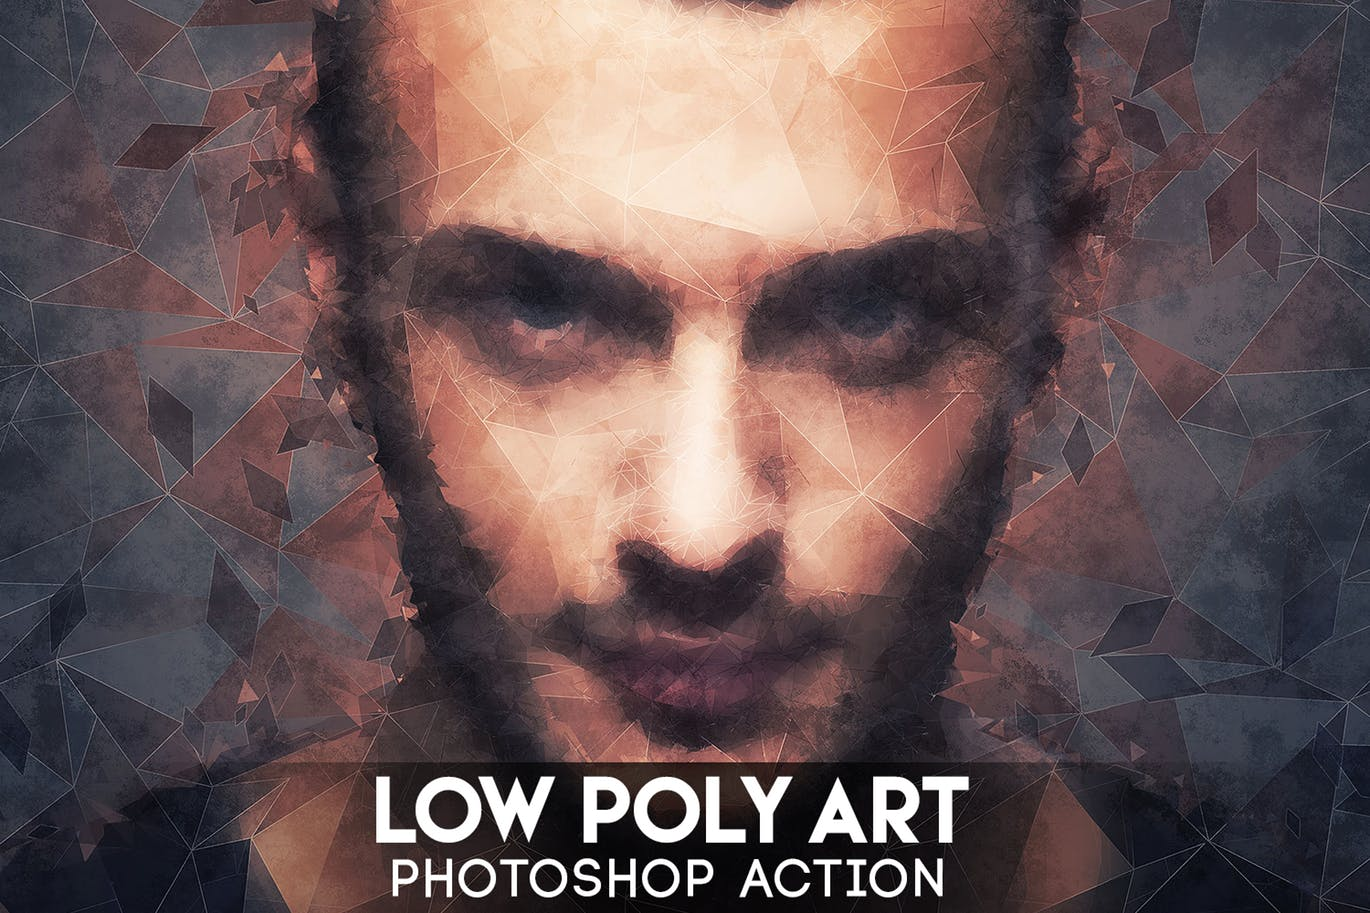 Low-Poly-Art-Photoshop-Action 40+ Best Photoshop Actions of 2018 design tips